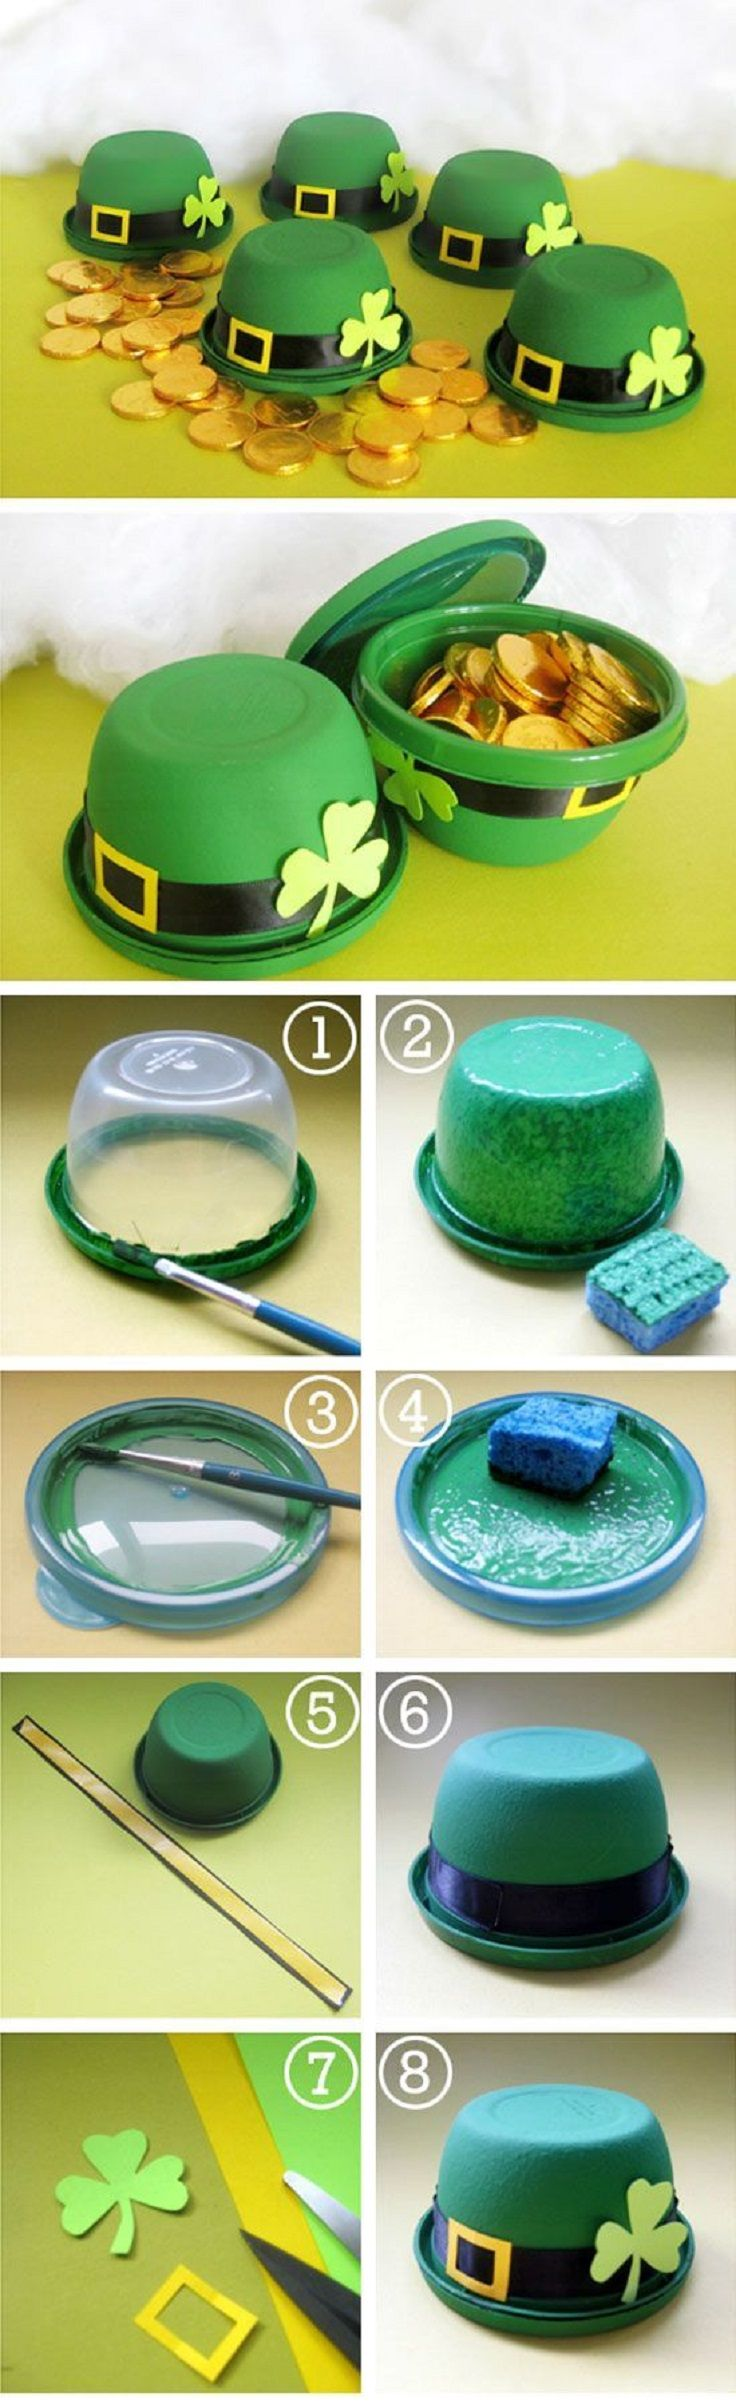 St. Patrick's Day Hat Favors - 15 Irish-Themed DIY St. Patrick's Day Decorations and Crafts for Kids